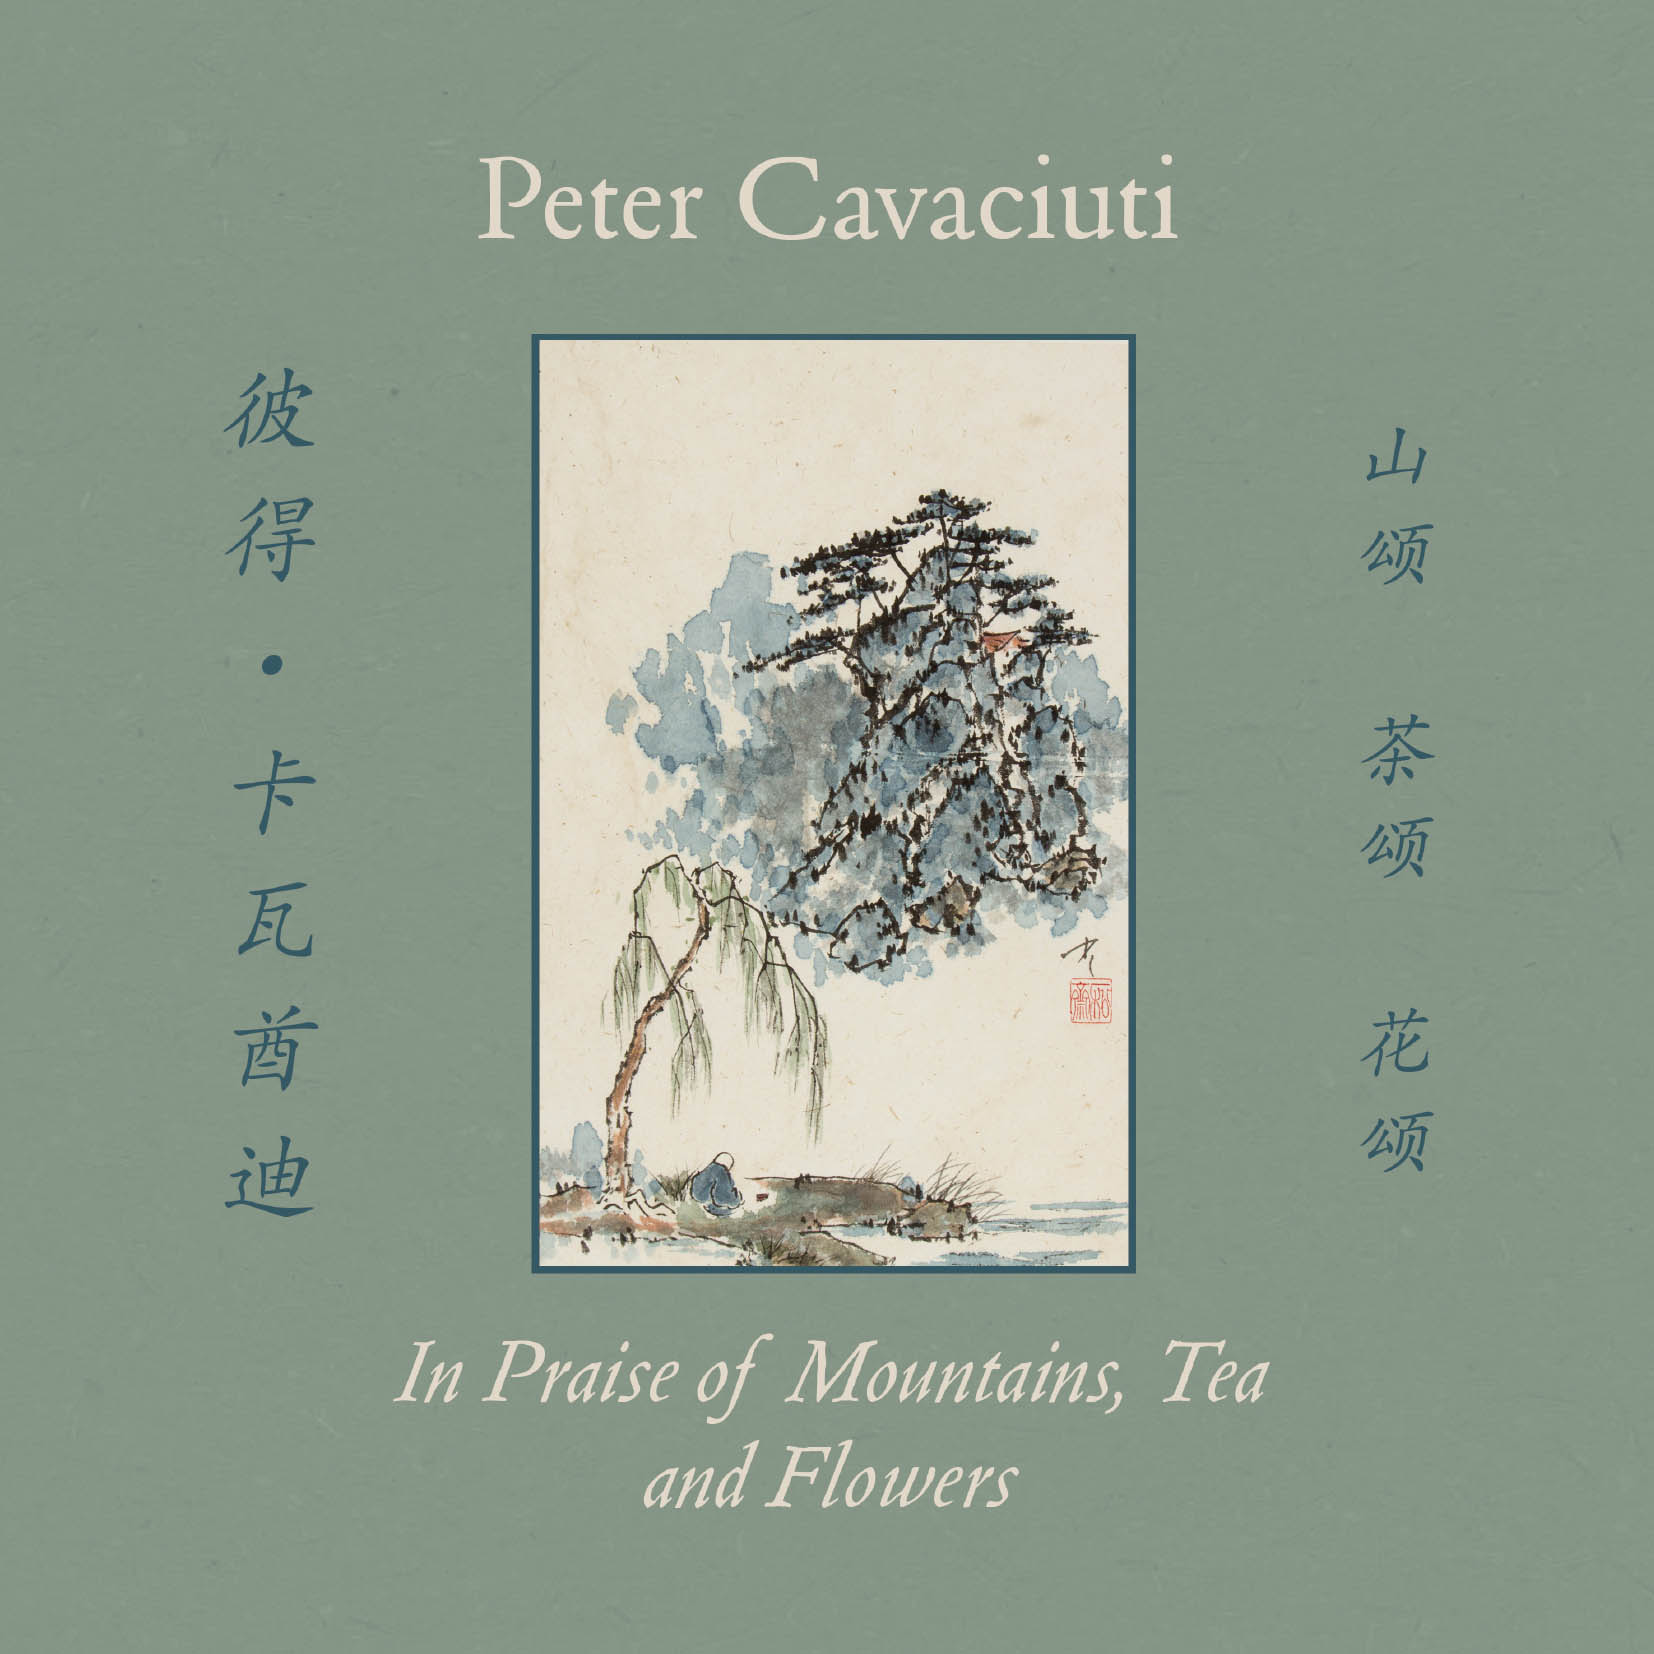 Catalogue of Peter Cavaciuti's paintings.